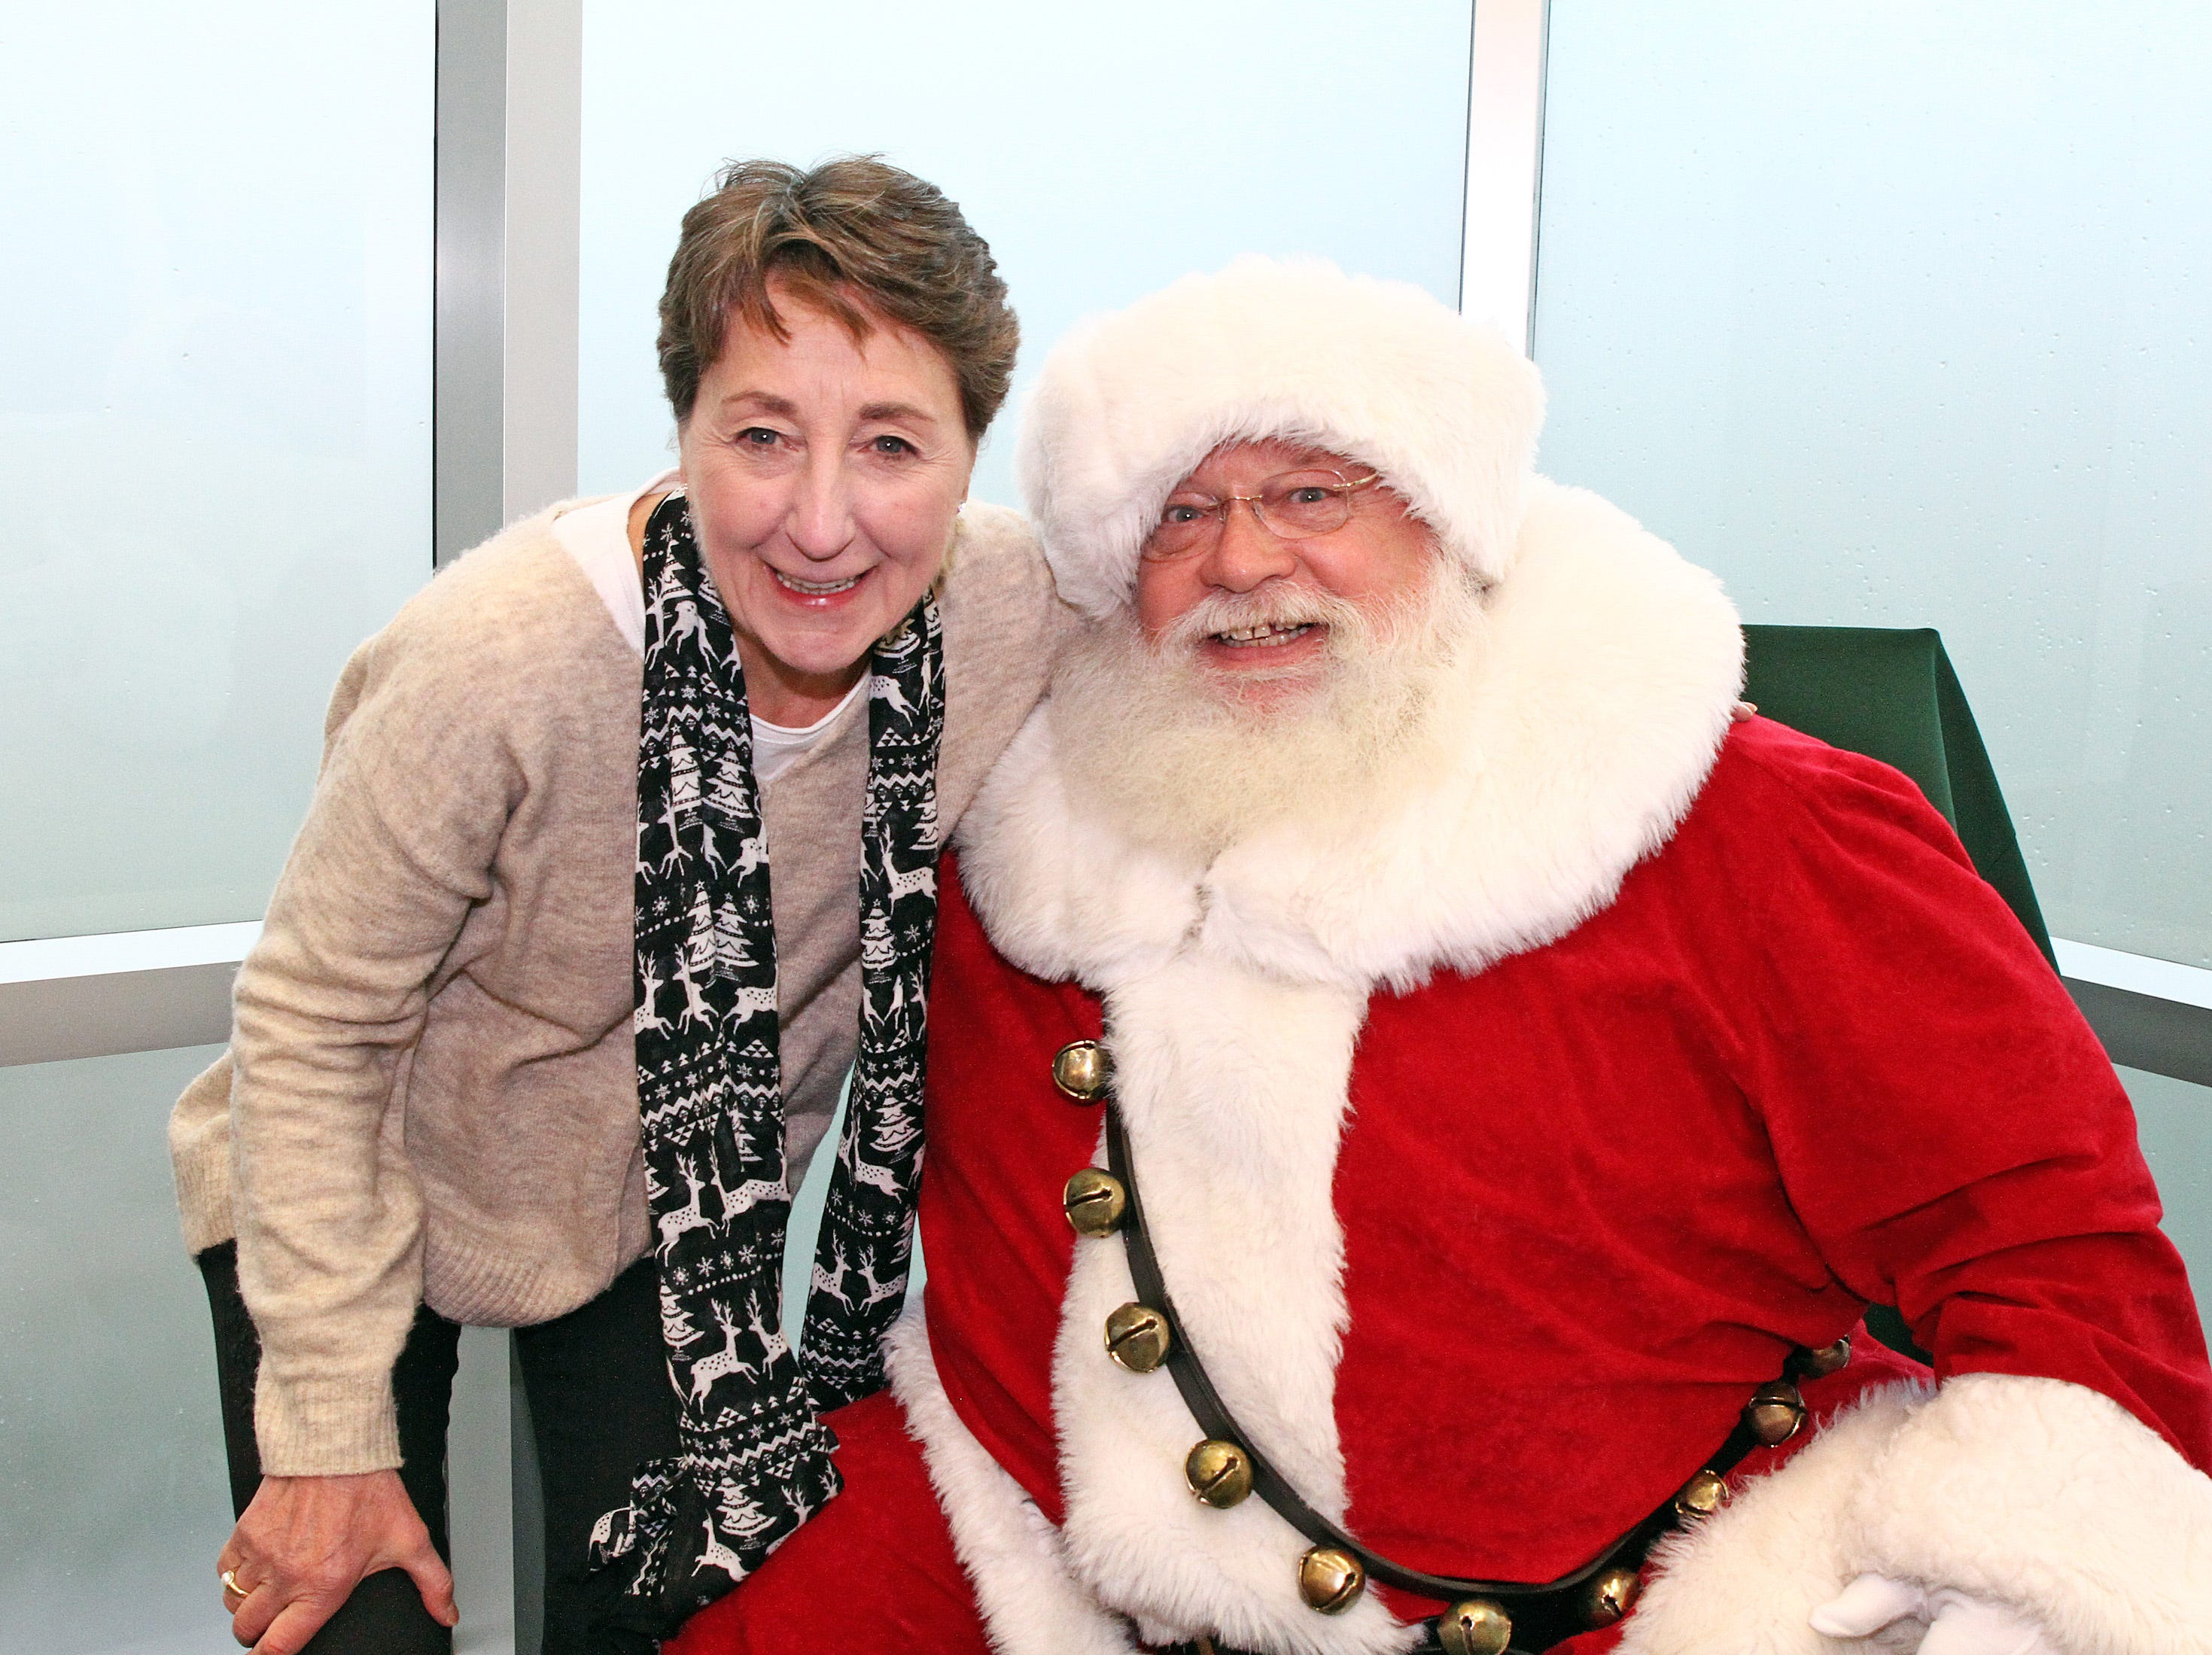 Johnston Mayor Paula Dierenfeld officially welcomes Santa to the Holidays in Johnston on Saturday, Dec. 1, 2018 at the Johnston Public Library featuring a gingerbread house contest, cookie decorating, holiday music performed by the Johnston Middle School Ninth Grade Chamber Choir, story time and Santa.